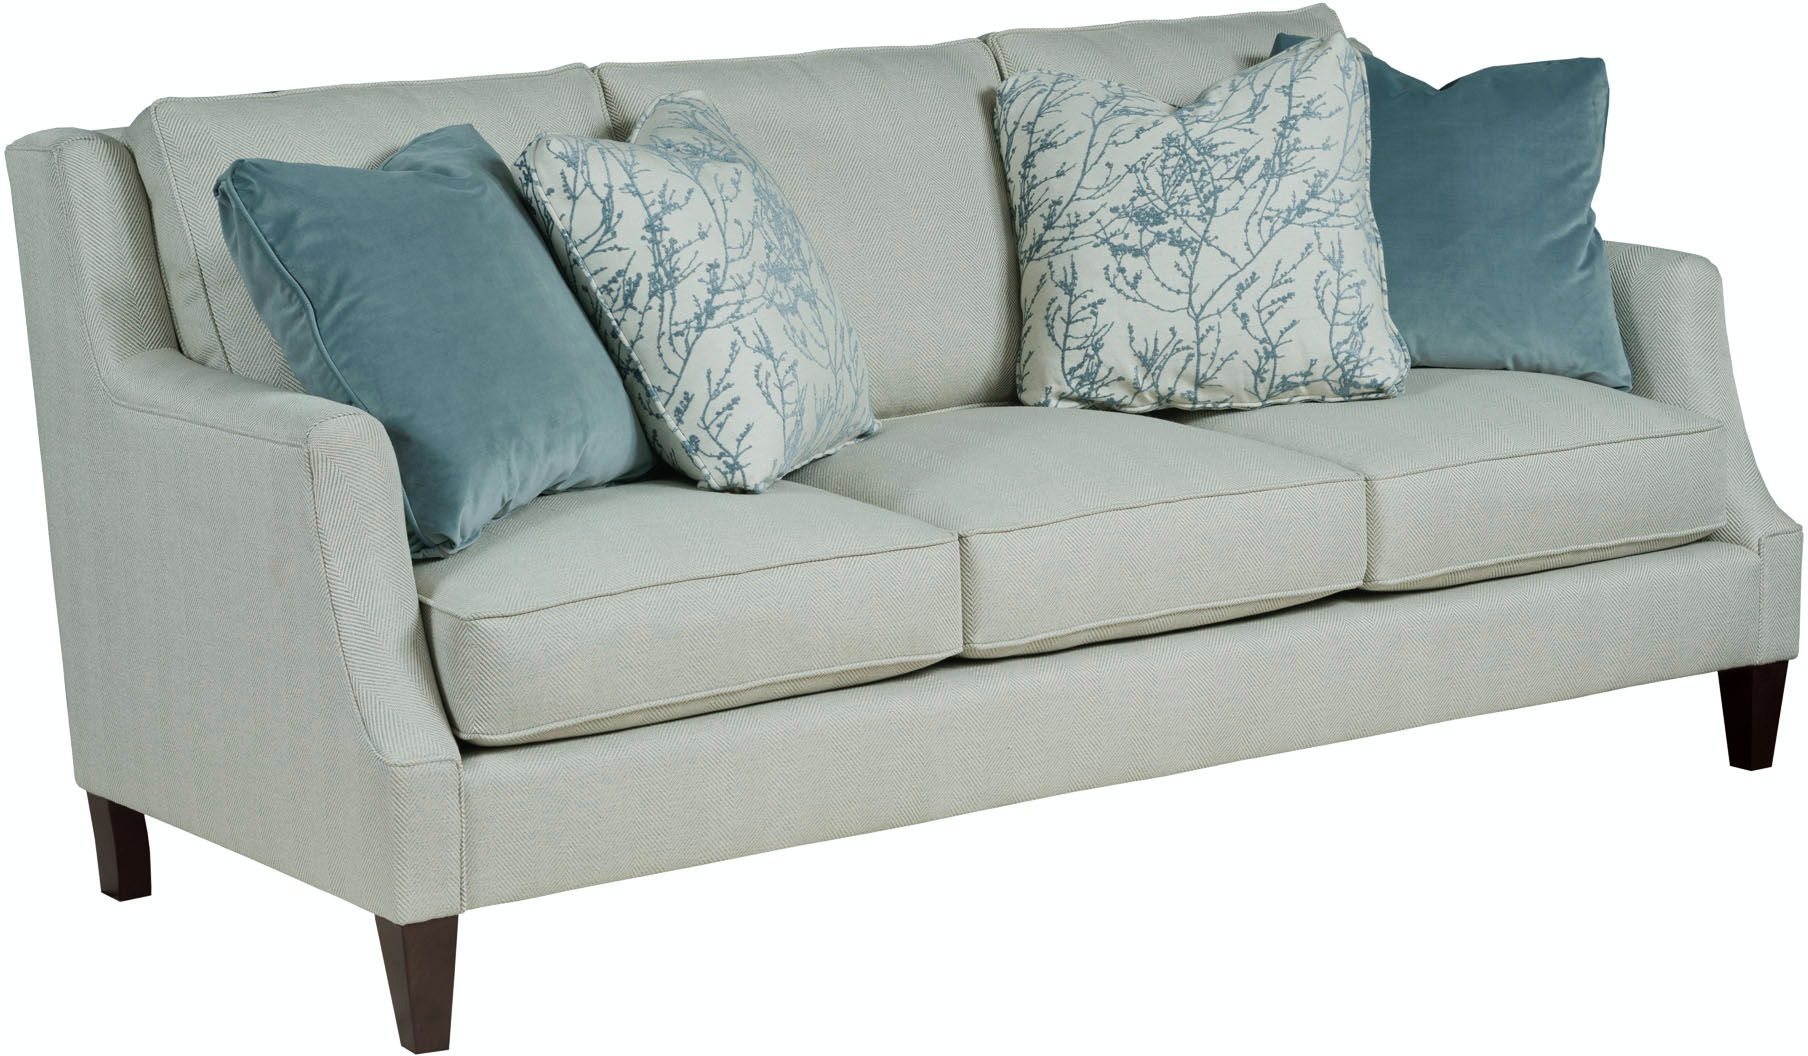 Kincaid Furniture Living Room Vivian Sofa 314 86 Emw Carpets